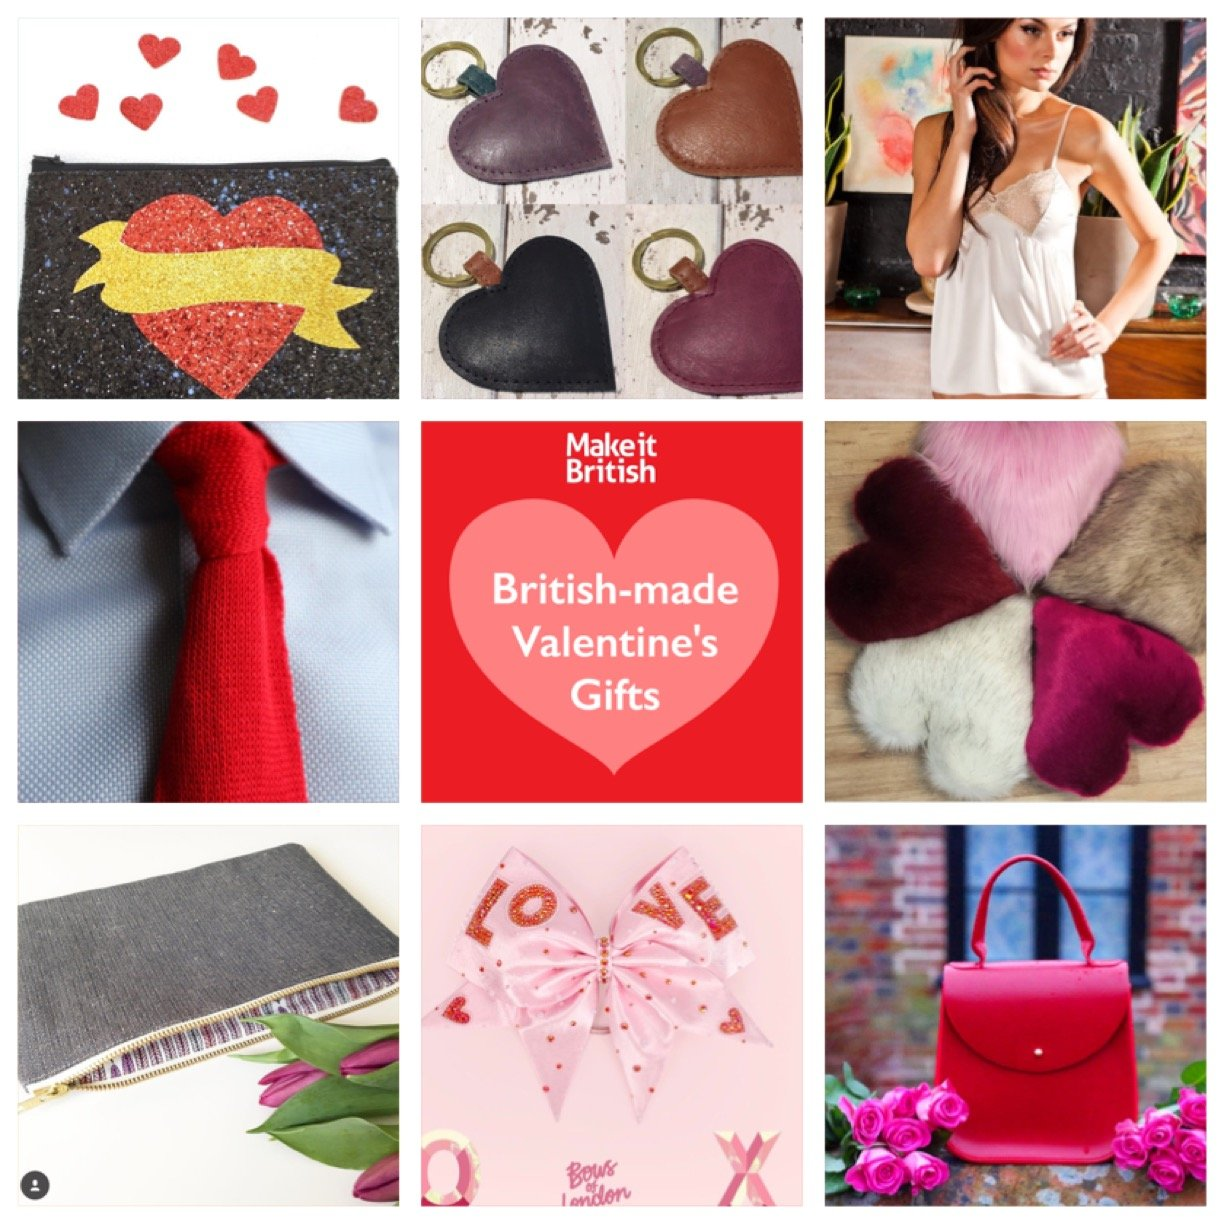 British-made valentines gifts